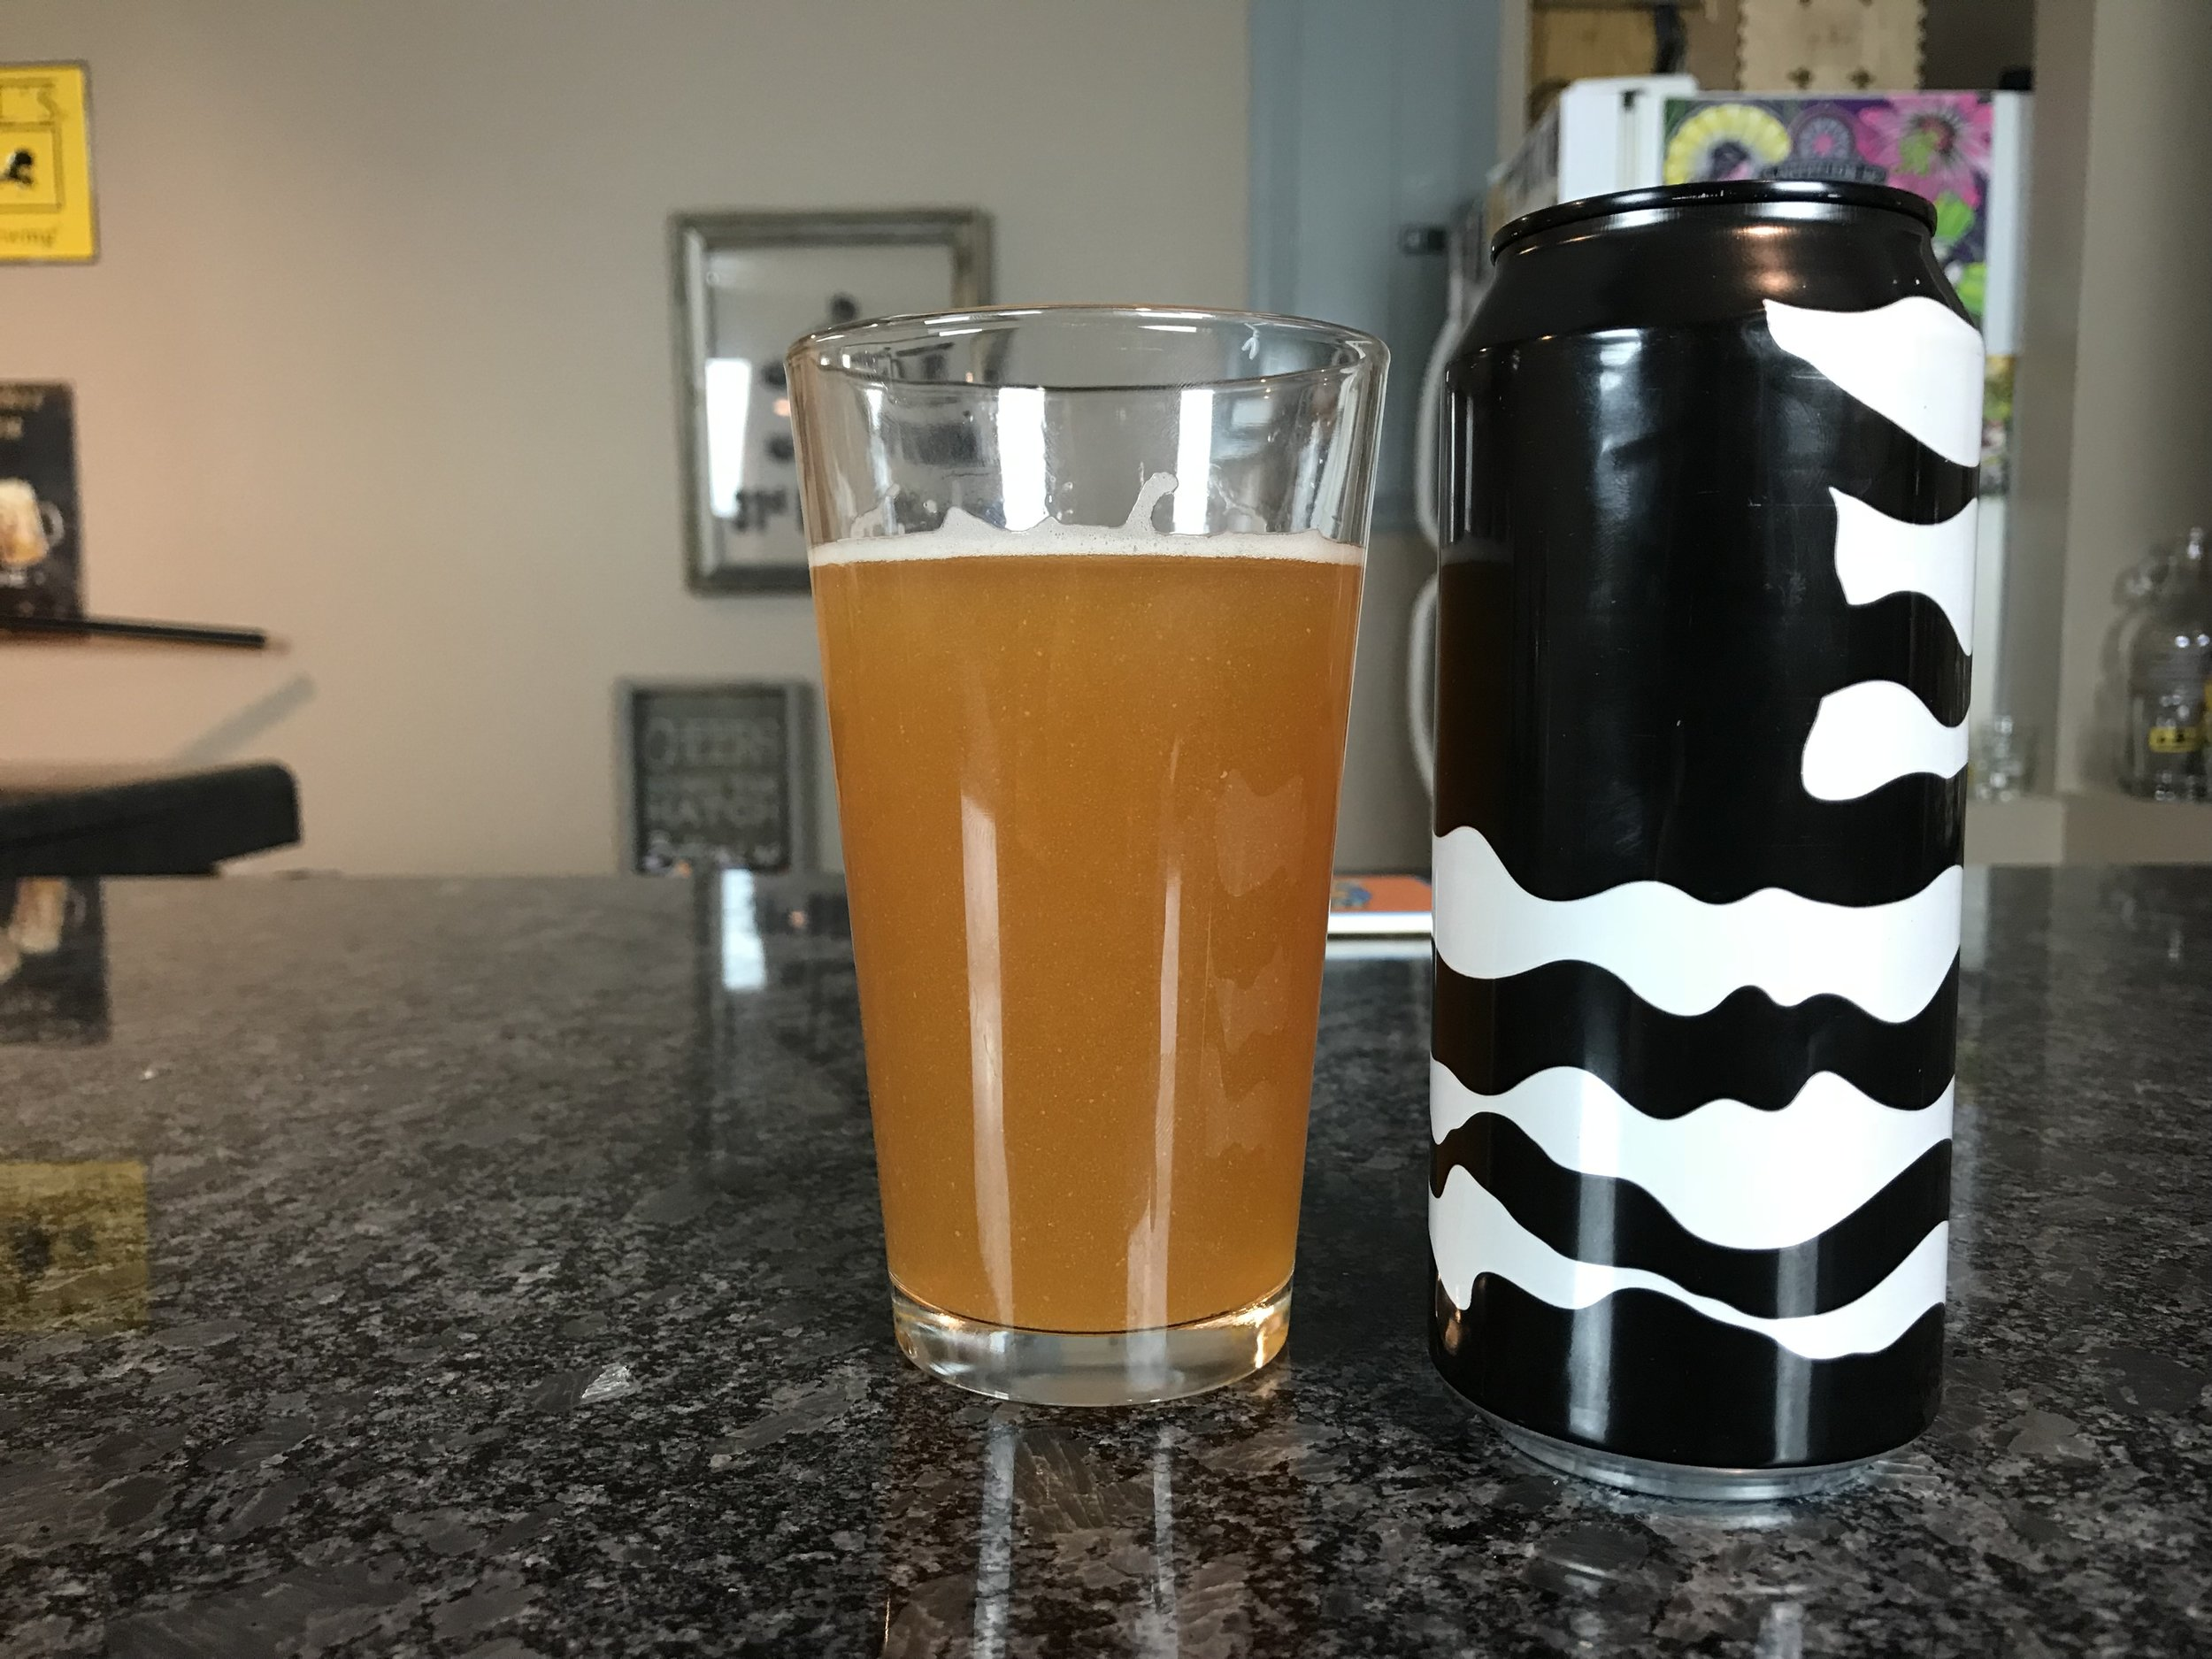 Nebuchadnezzar 8.5% ABV - Want to see the Video review? Click on the image.